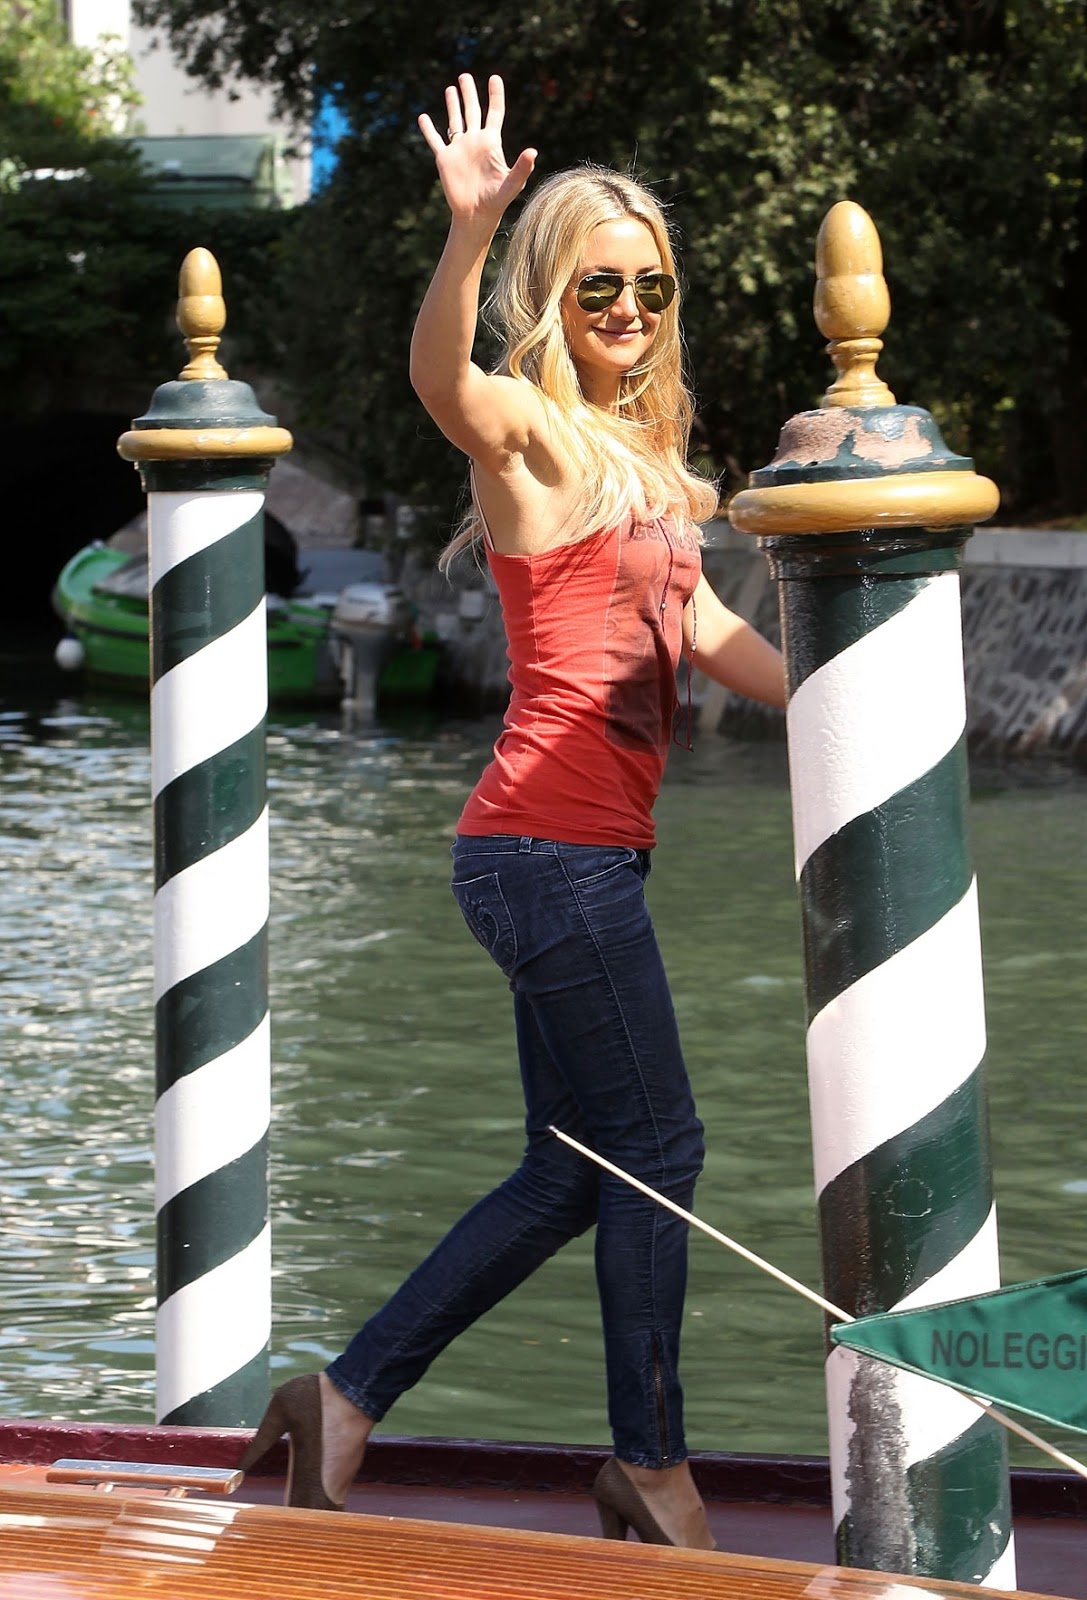 HQ Photos of Kate Hudson with Hot Sunglasses At The Reluctant Fundamentalist Photocall In Venice